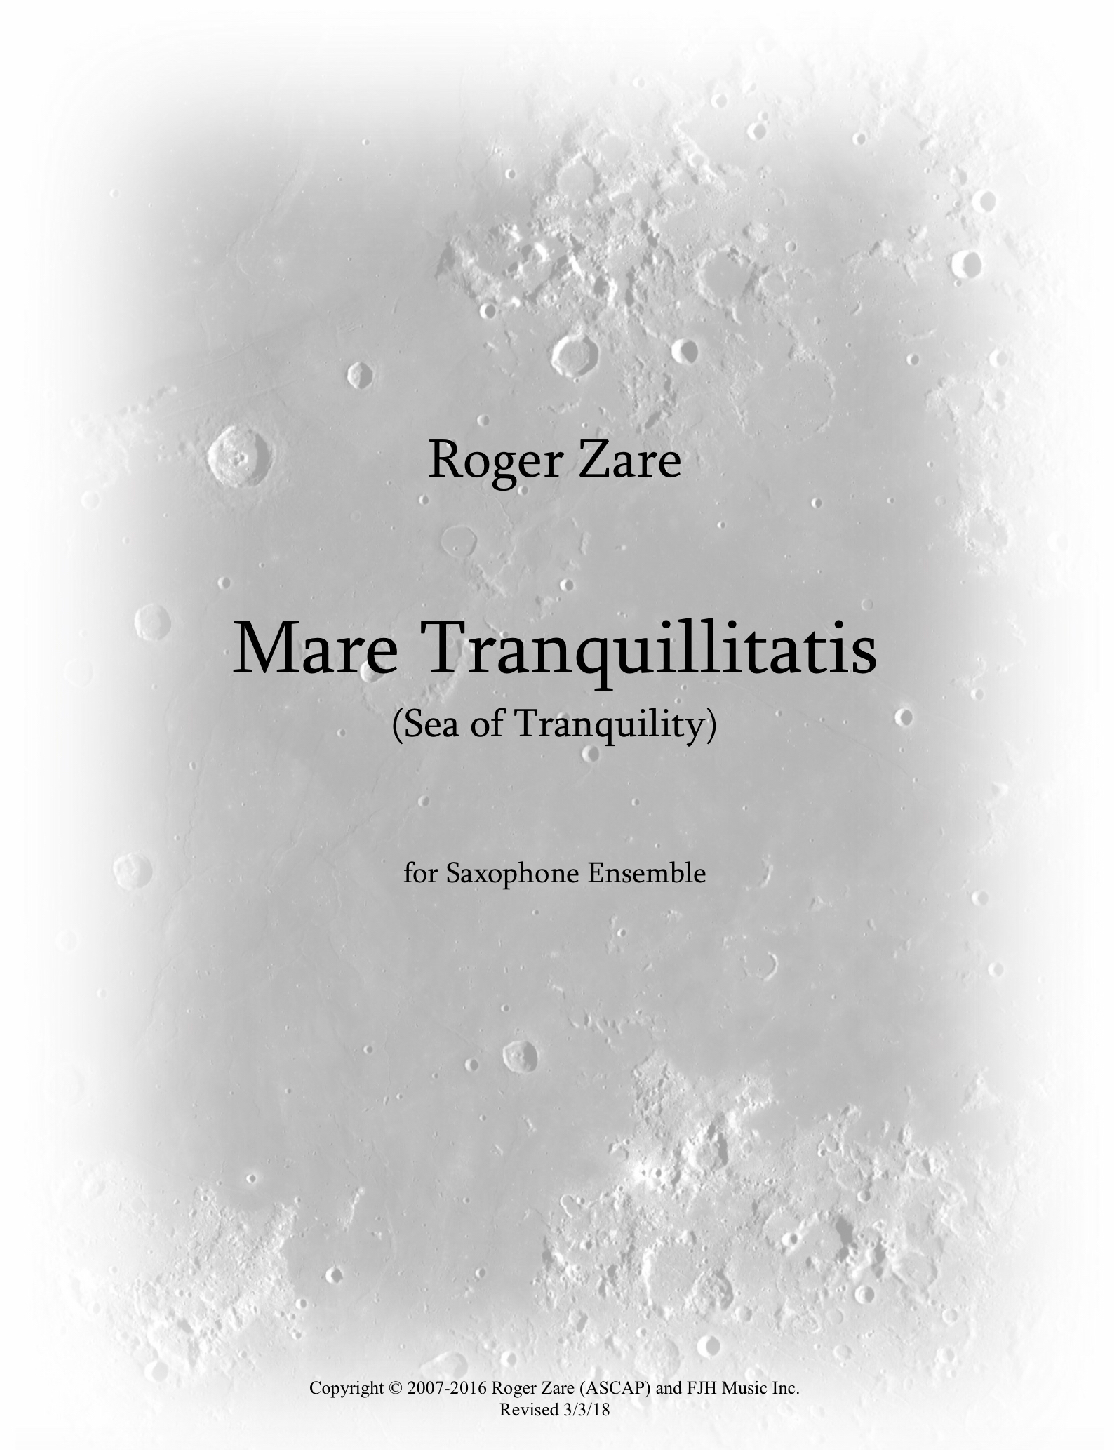 Mare Tranquillitatis (Saxophone Ensemble Version) by Roger Zare